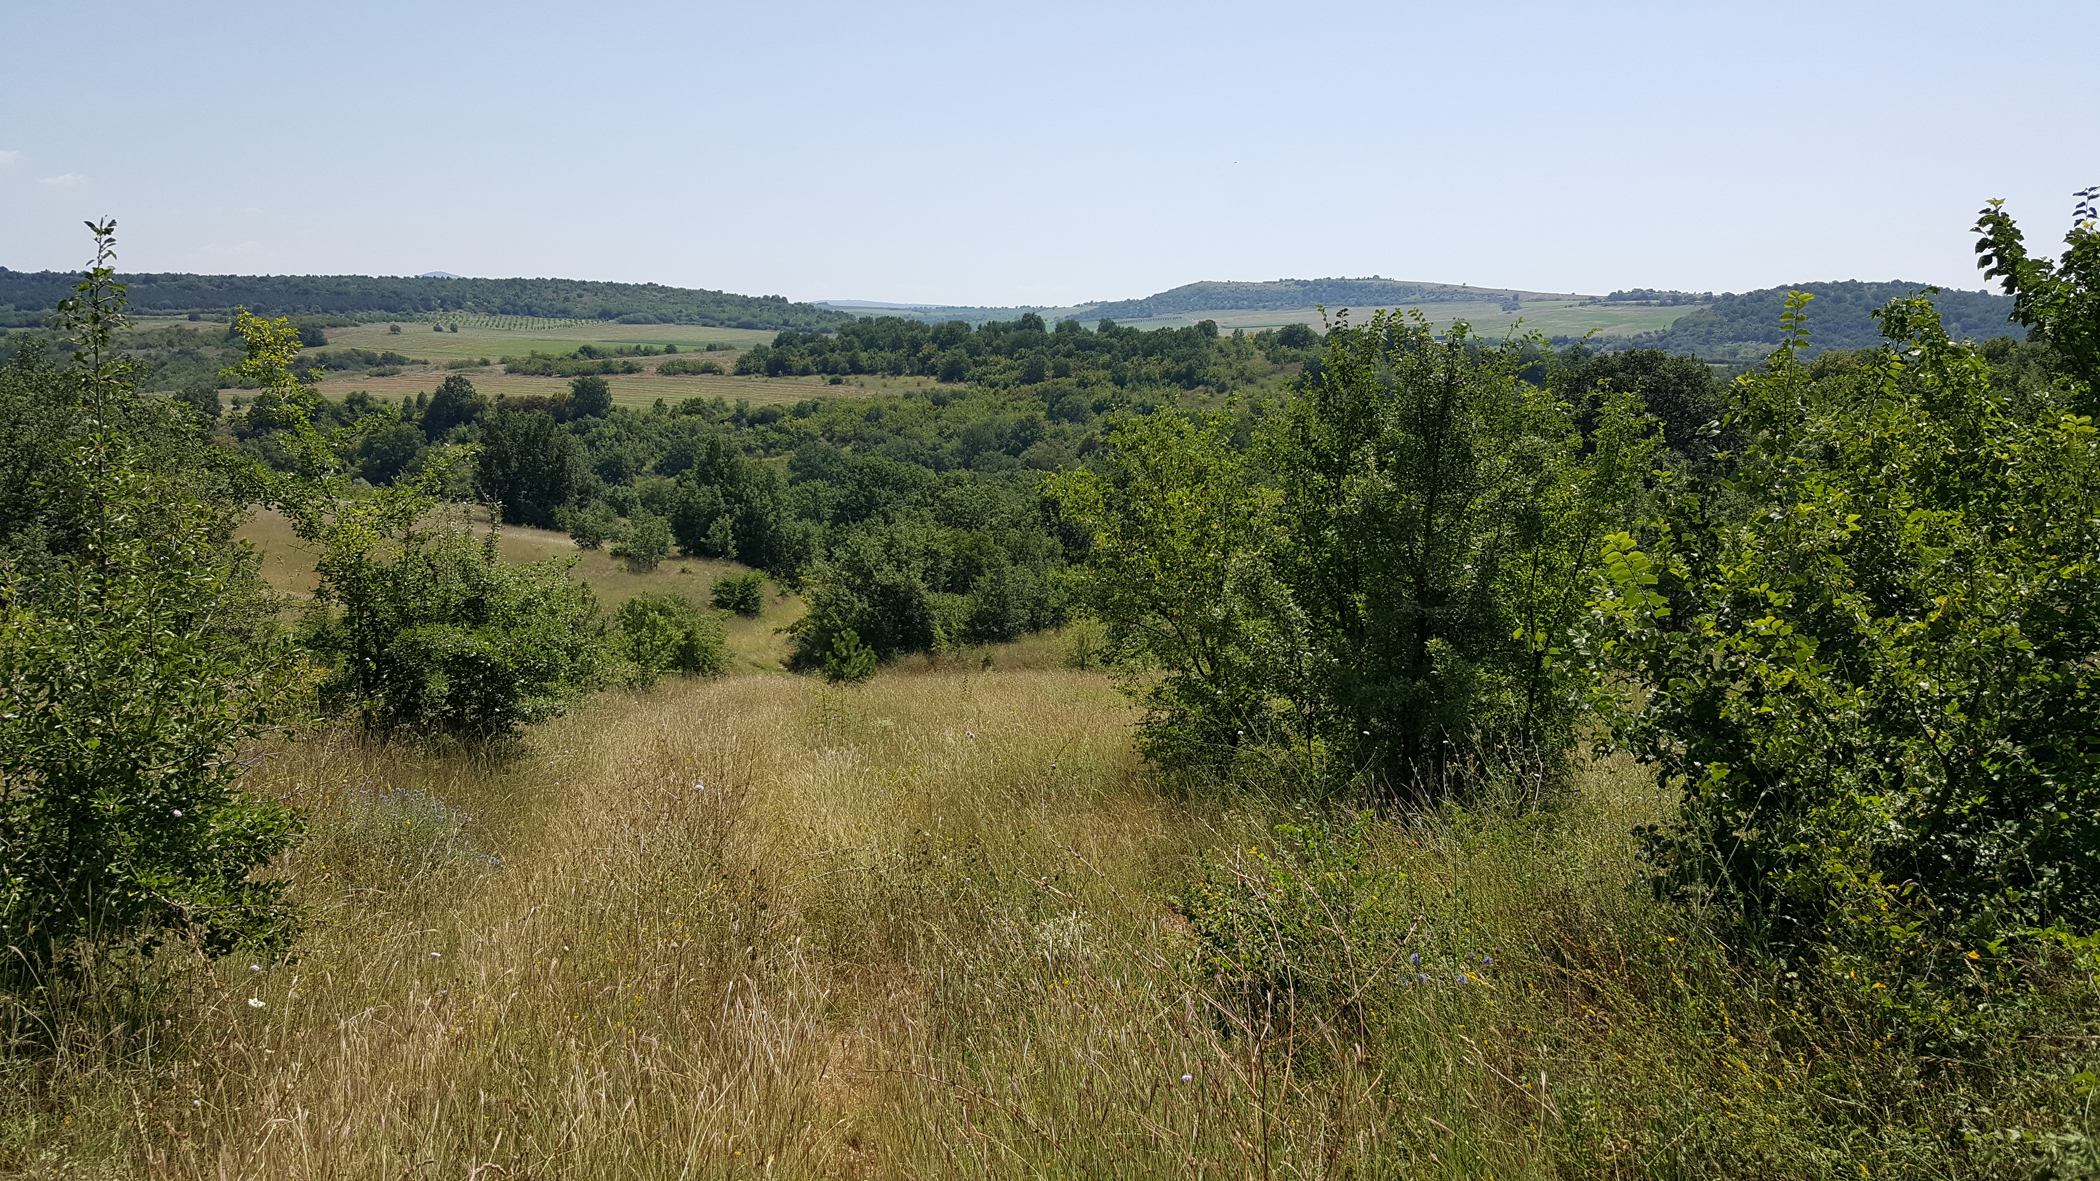 The habitat where nest boxes and tubes were placed in 2018 (Photo: Dennis Wansink)